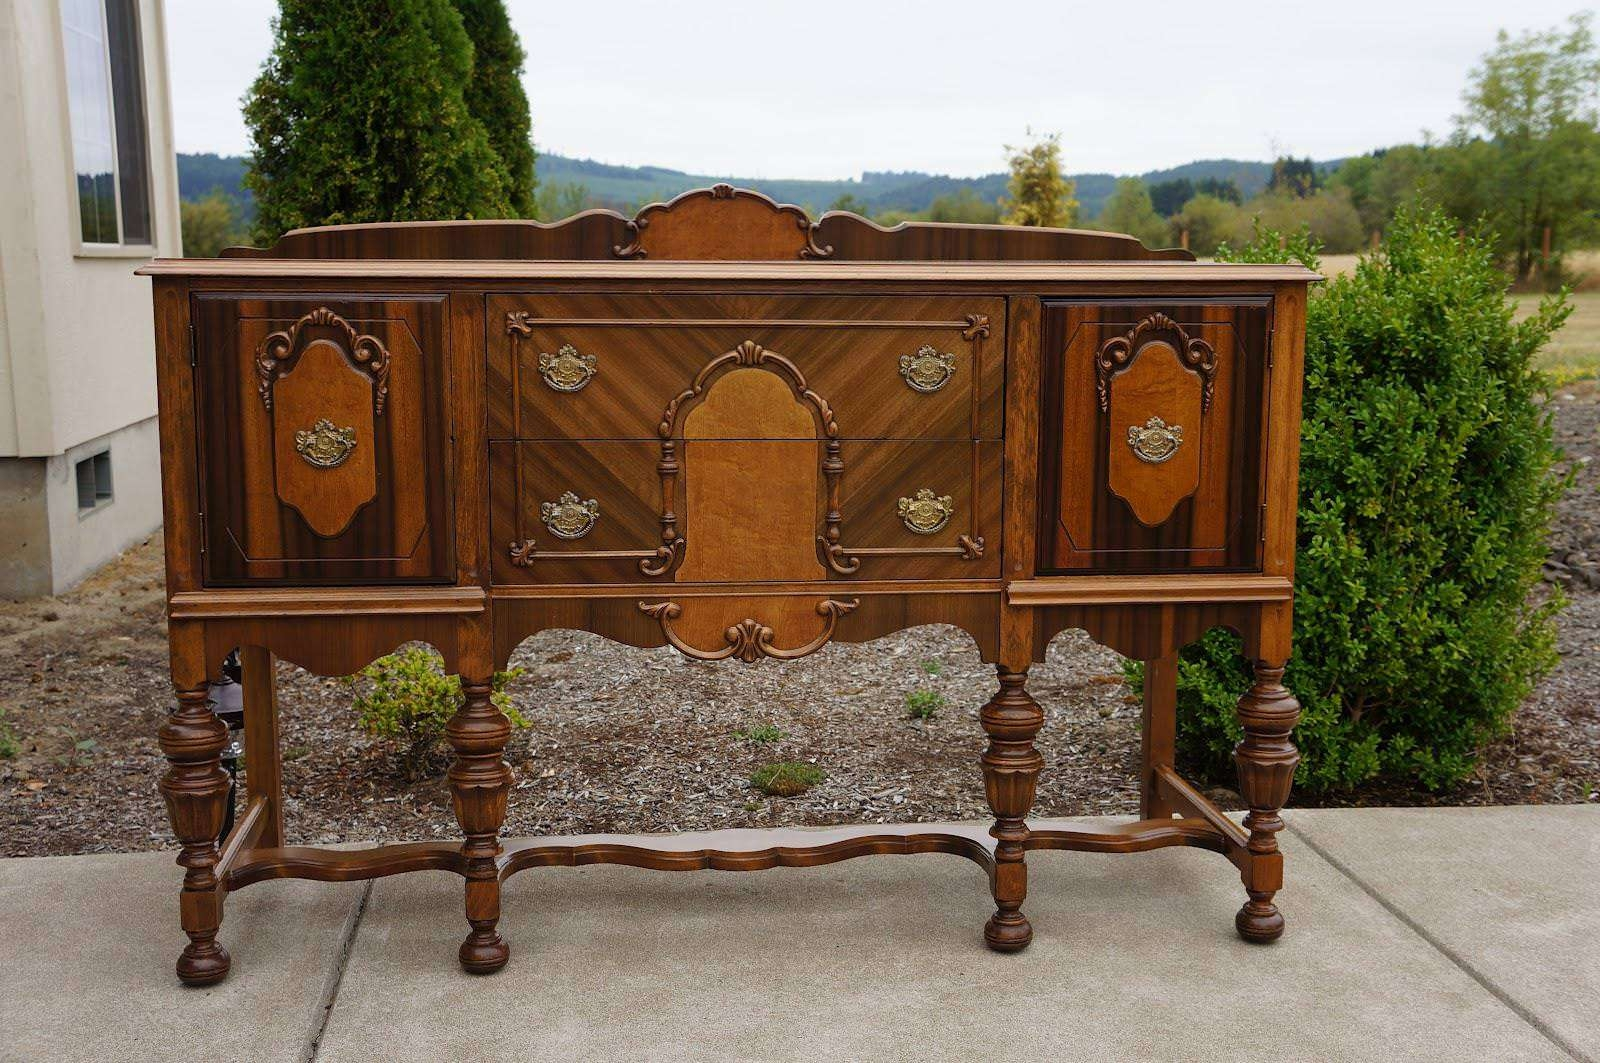 Luxury Antique Sideboards And Buffets — Interior Home Design Regarding Antique Sideboards Buffets (View 17 of 20)